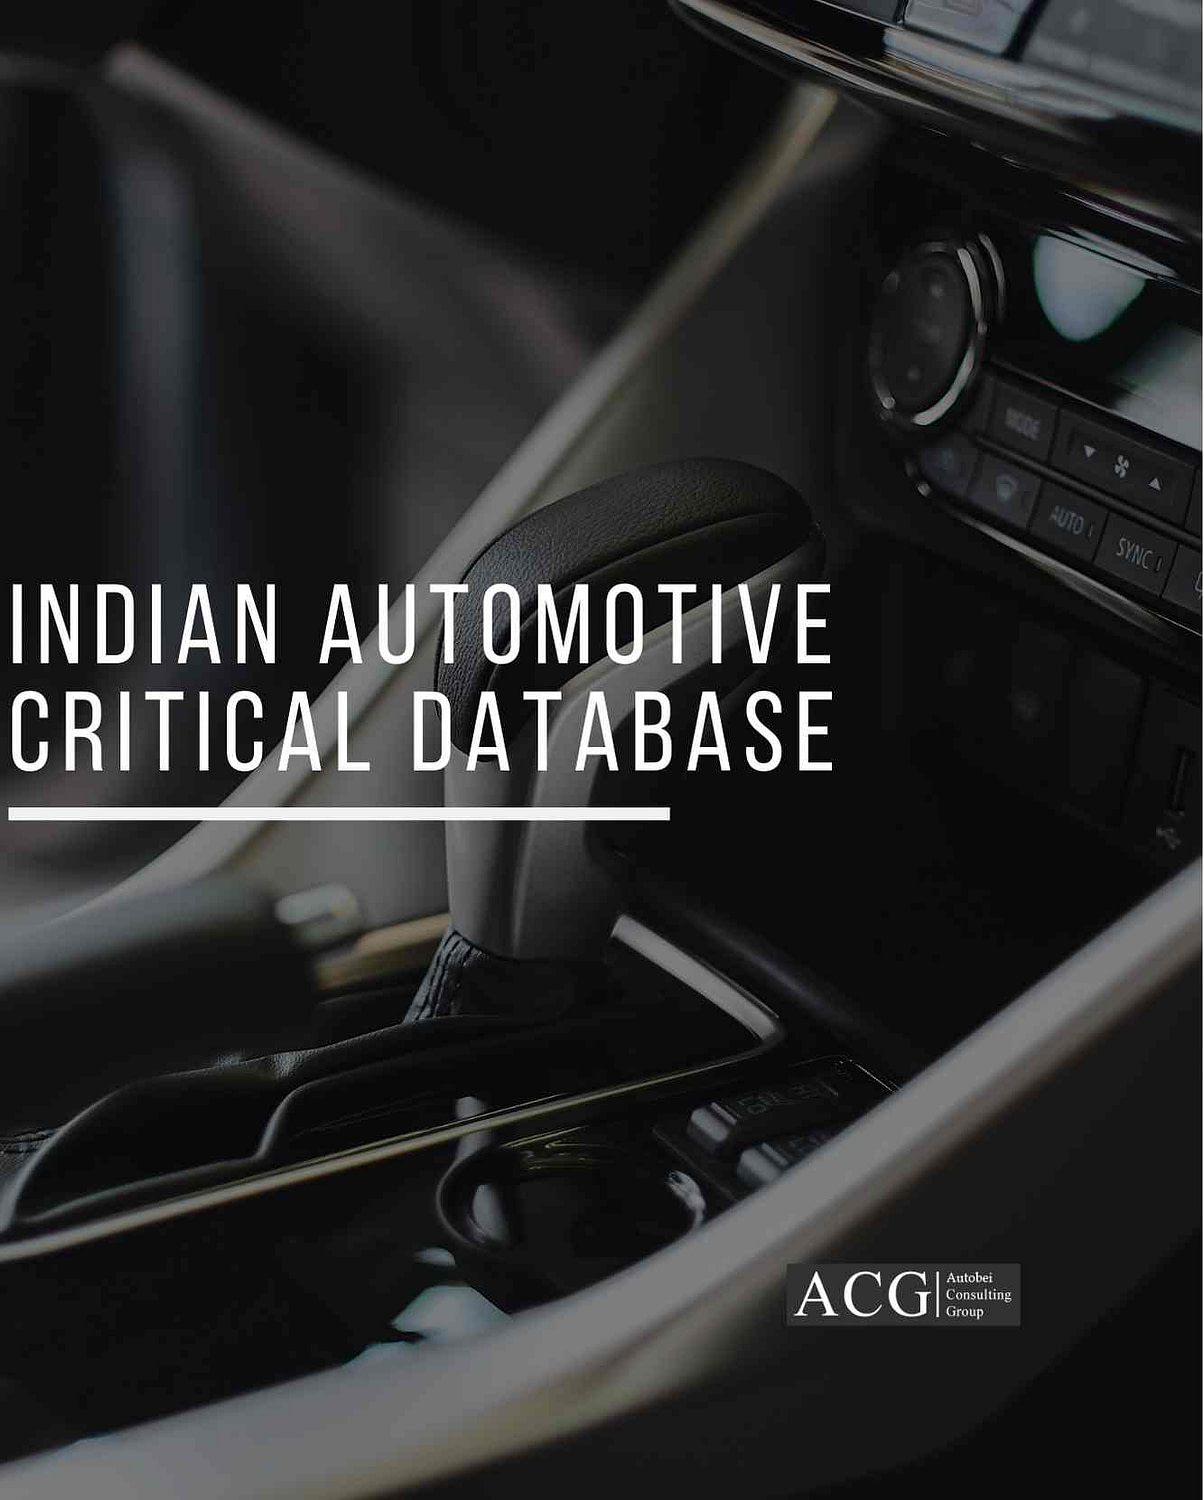 Indian Automotive Critical Database